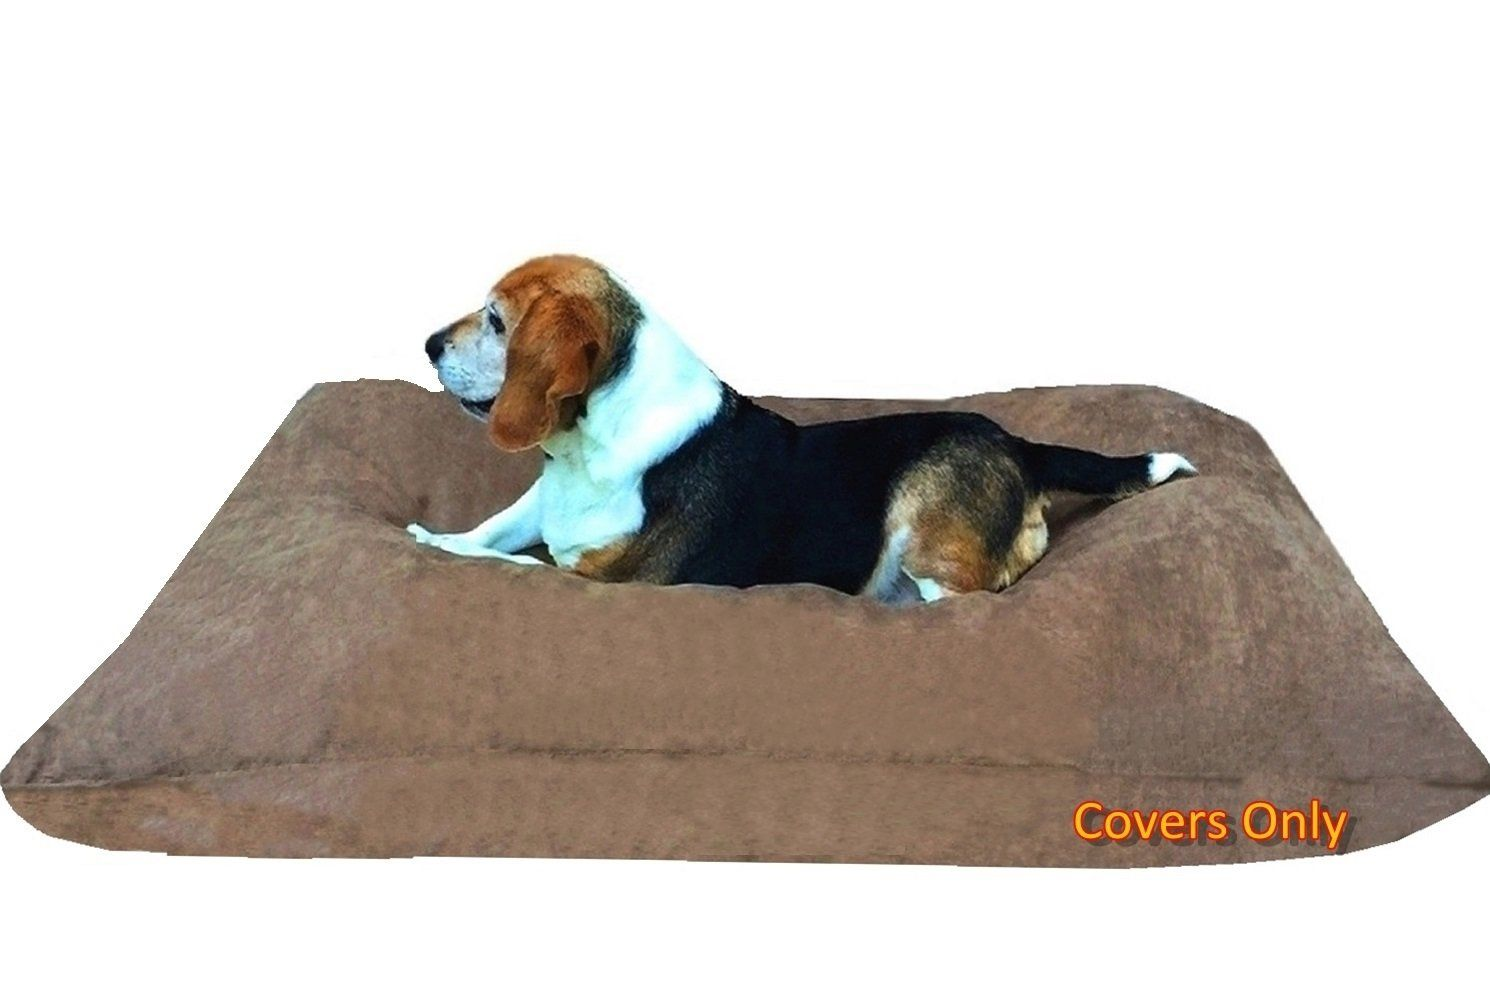 Waterproof Liner Internal Case in Medium or Large for Dog and Cat Dogbed4less DIY Do It Yourself Pet Pillow 2 Covers Pet Bed Duvet Zipper External Cover Covers only